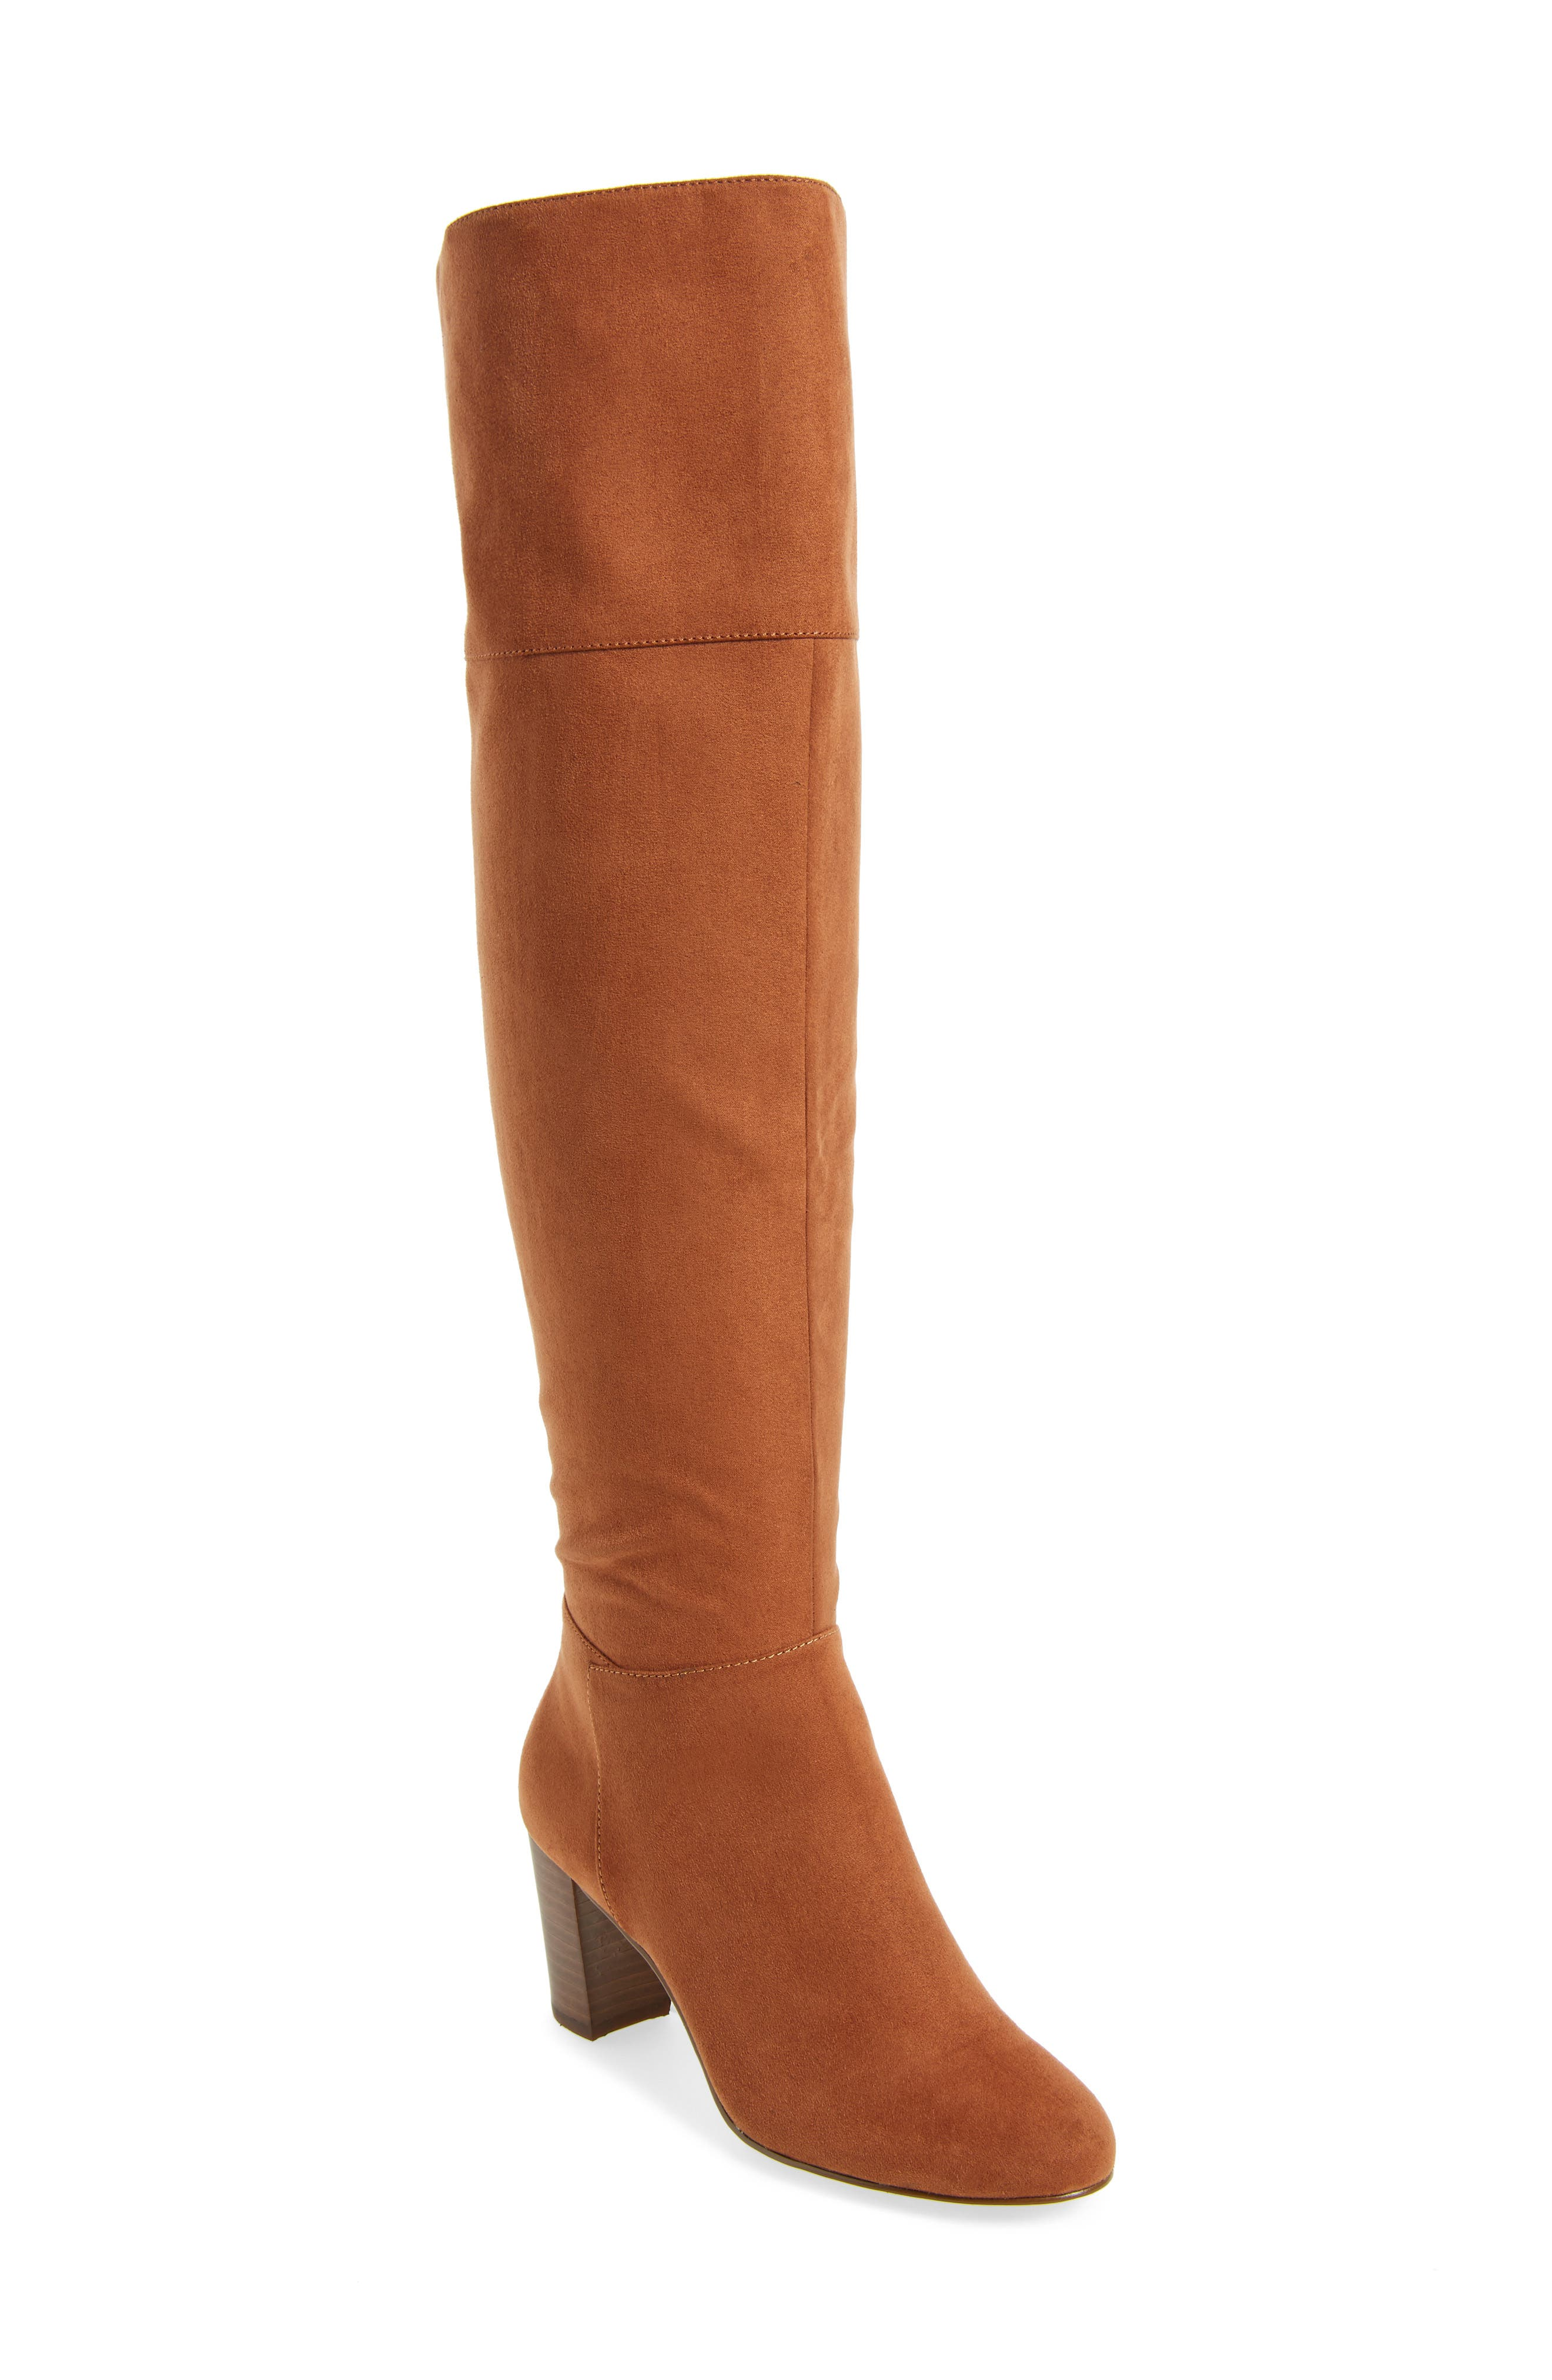 Telluride II Over the Knee Boot,                             Main thumbnail 1, color,                             Camel Suede